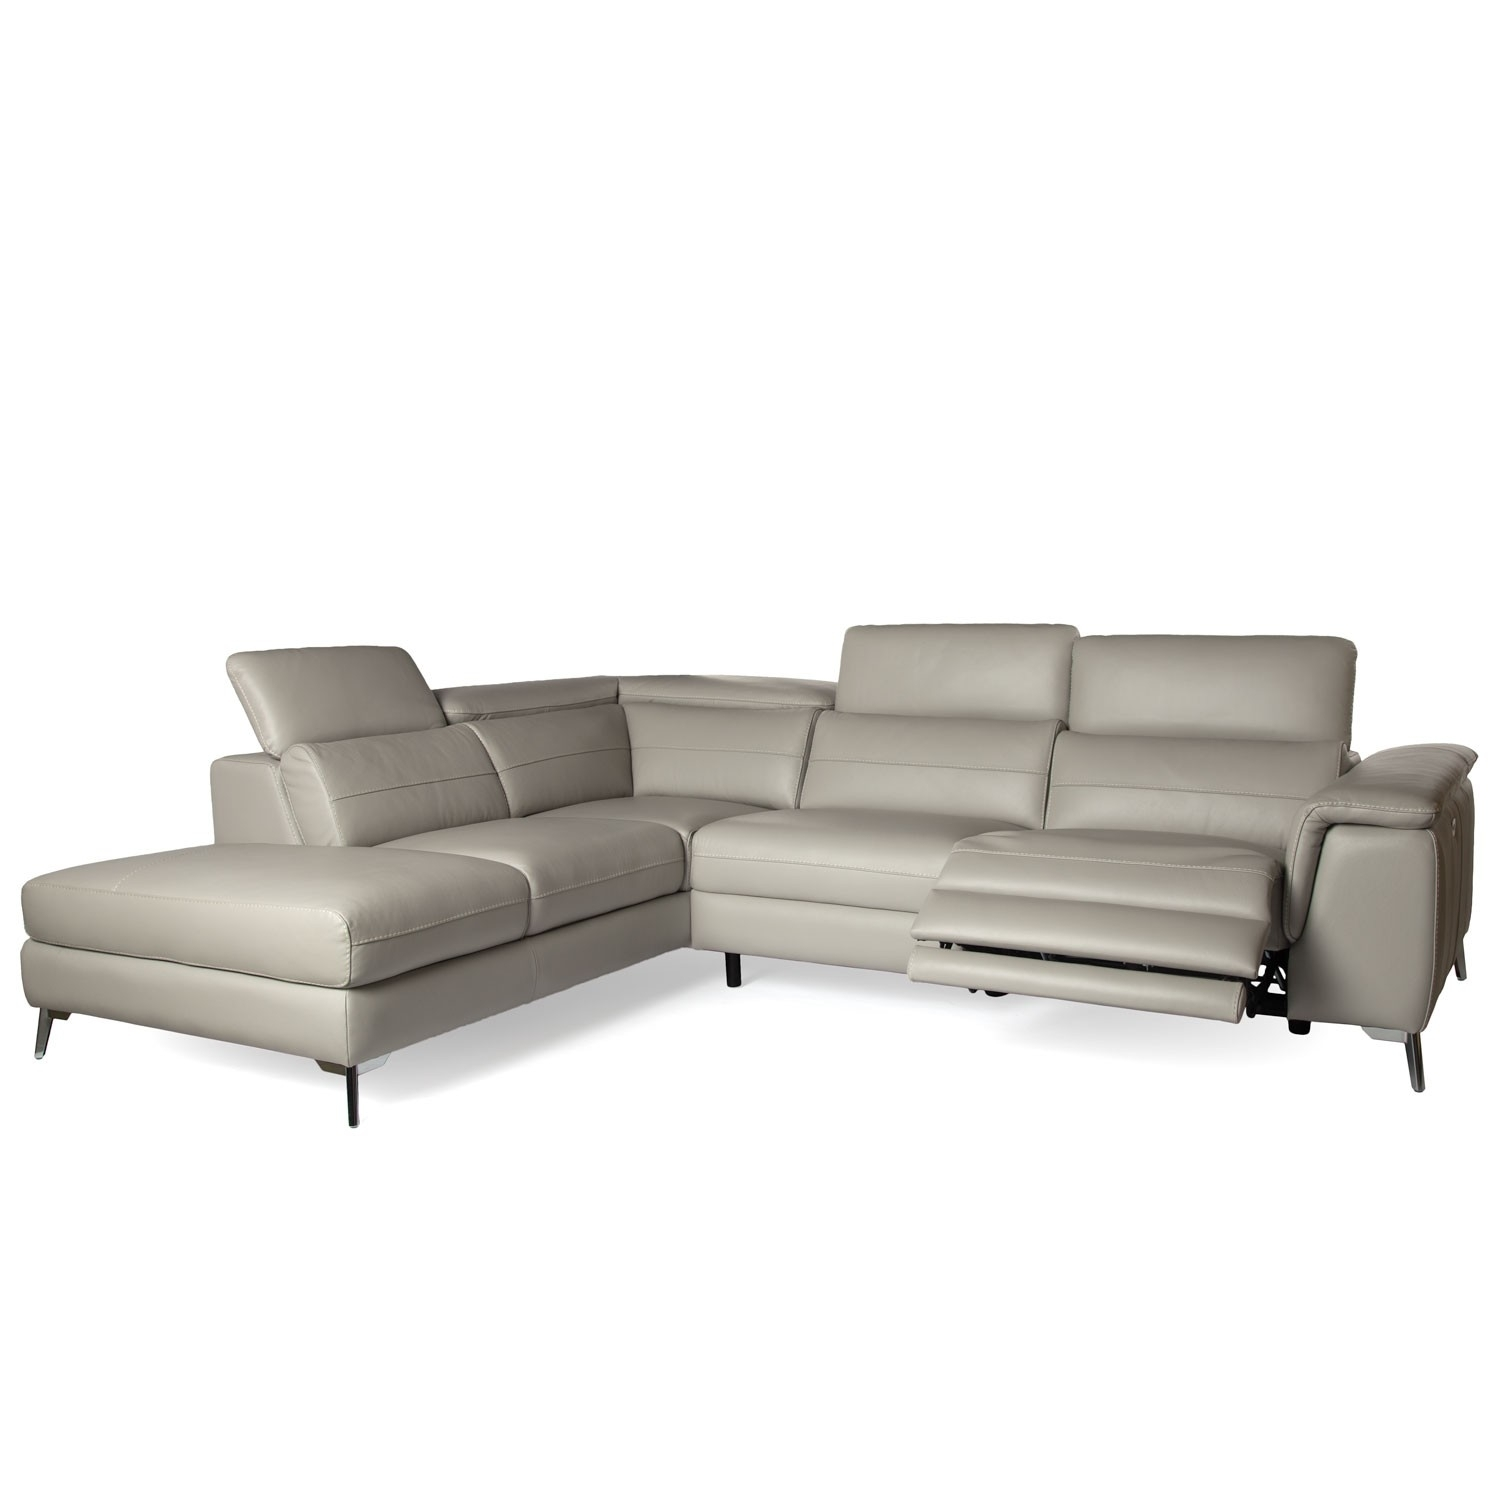 Grey Leather Reclining Sectional Clyde 3 Piece Power W Pwr Hdrst for Clyde Grey Leather 3 Piece Power Reclining Sectionals With Pwr Hdrst & Usb (Image 7 of 30)